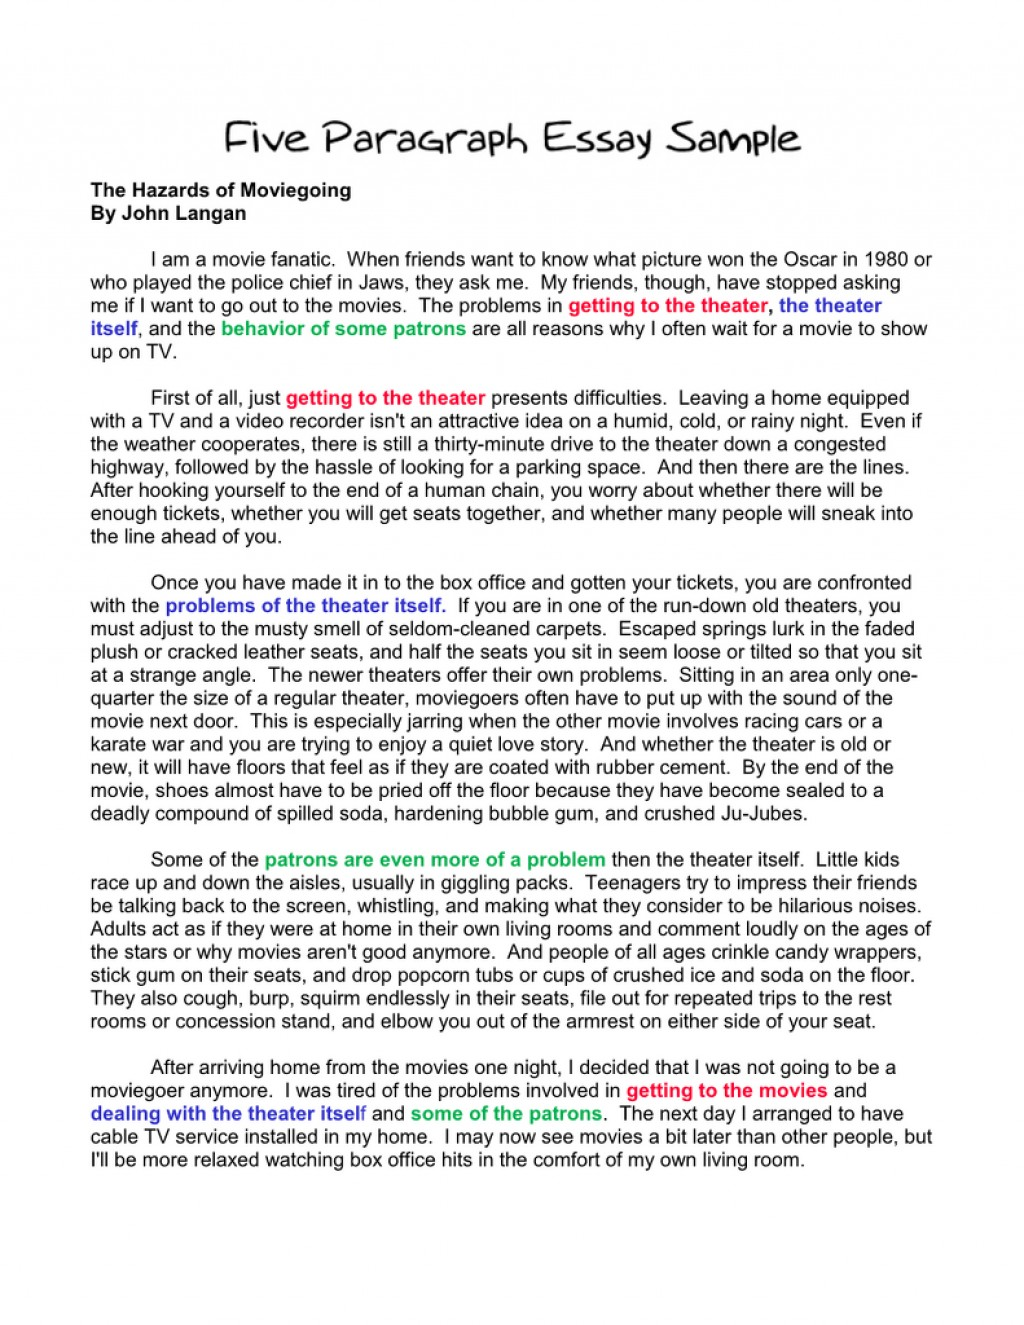 002 Paragraph Essay Sample Example Basic Outline An How To Start Sentence In First Second Write Third Body Conclusion Argumentative Stirring 5 Free Template Printable Large